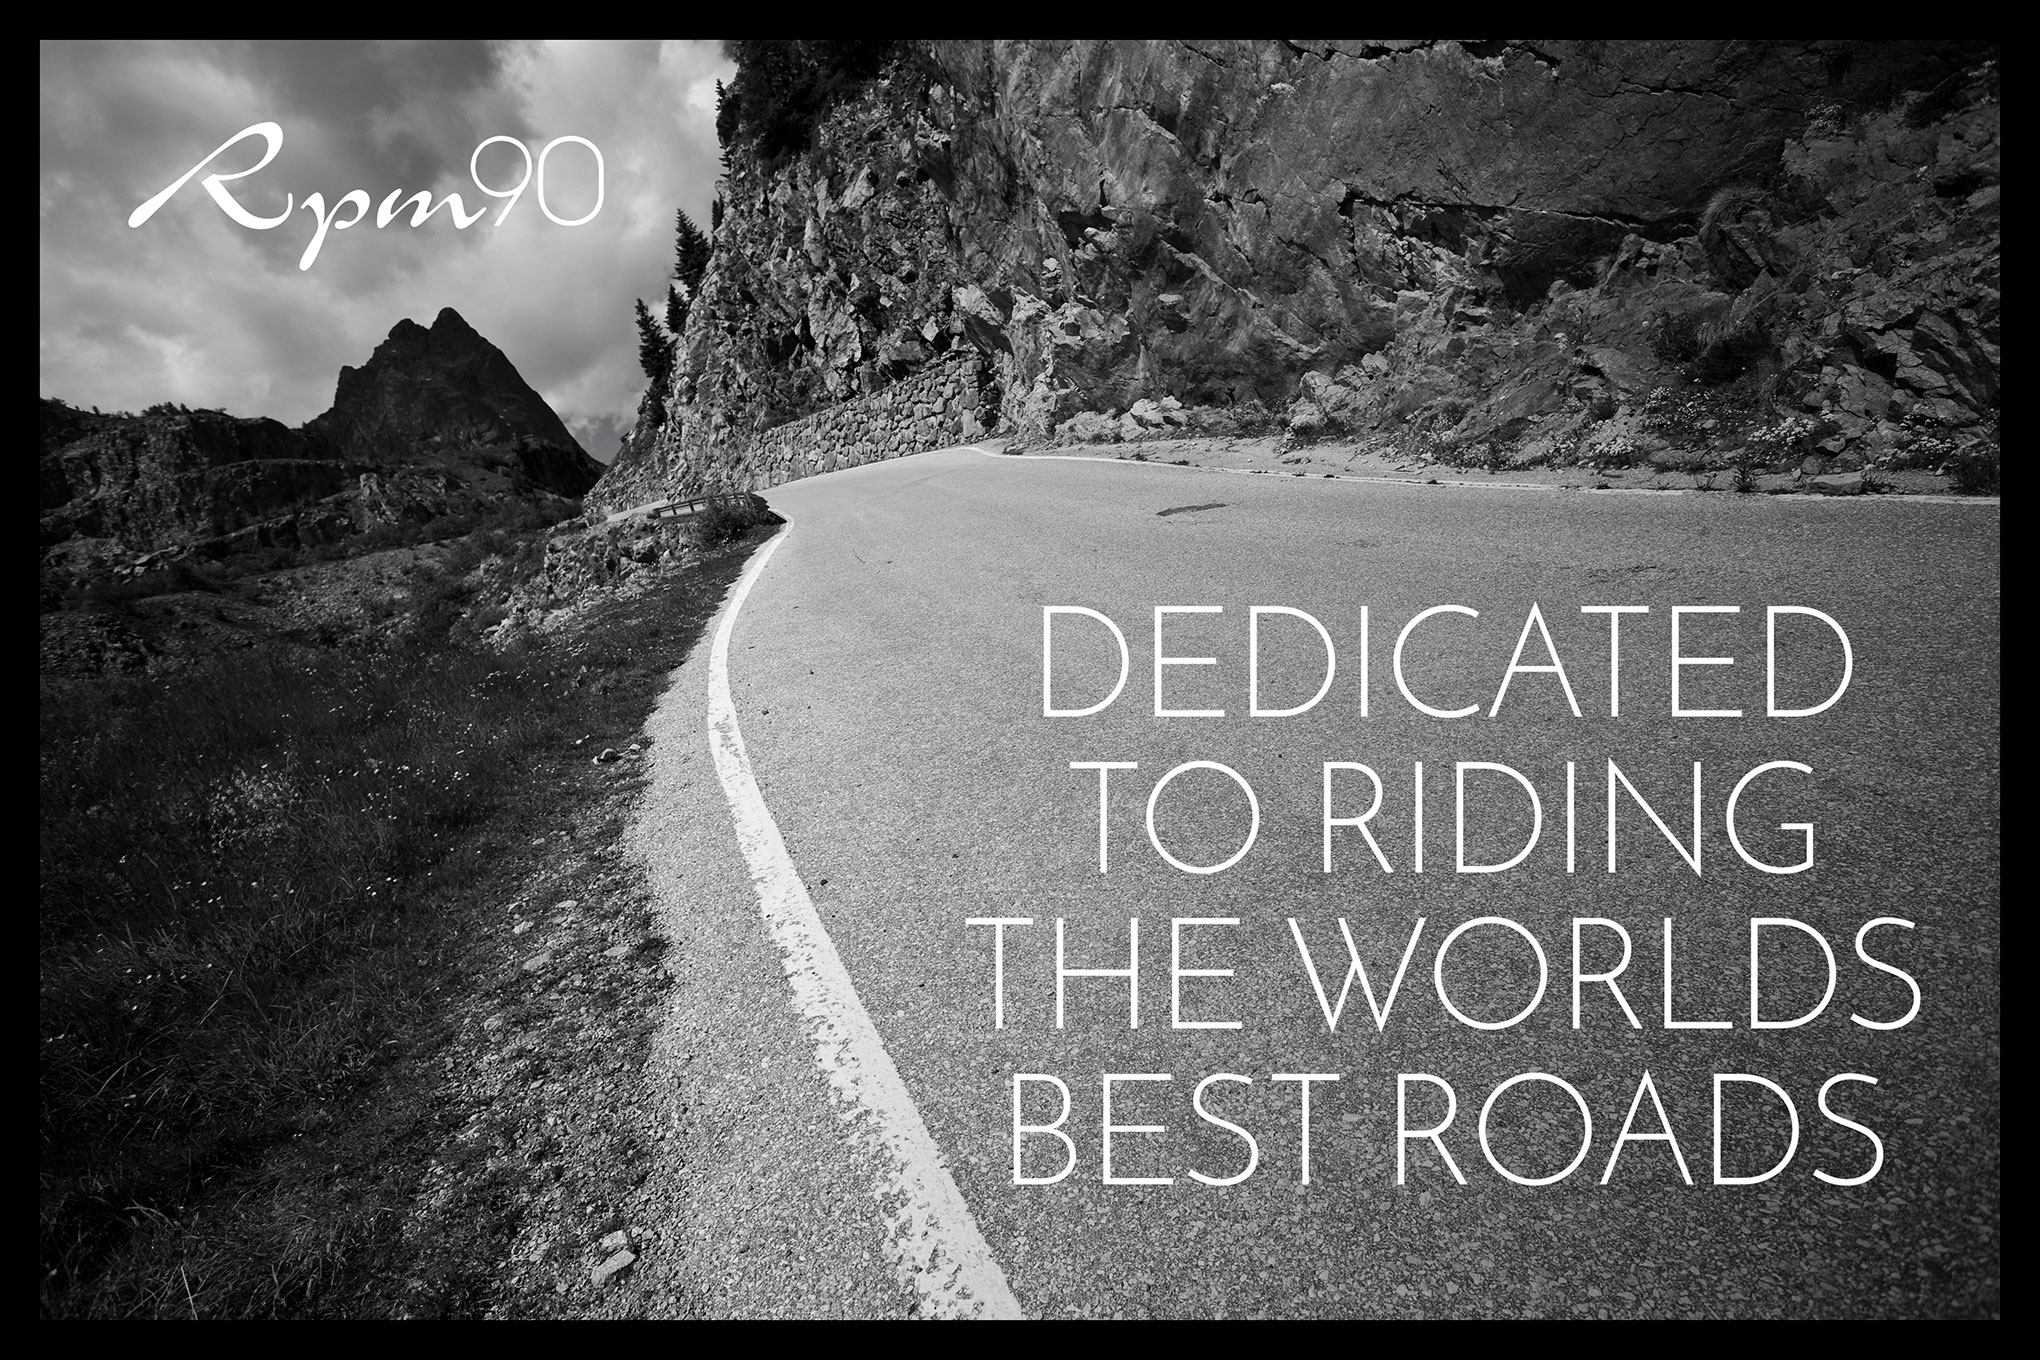 Advert design for RPM90 Cycling Holidays. Black & White image of a road in the Alps with RPM90 Brand logo top left and tag line 'Dedicated to riding the worlds best roads' bottom right.